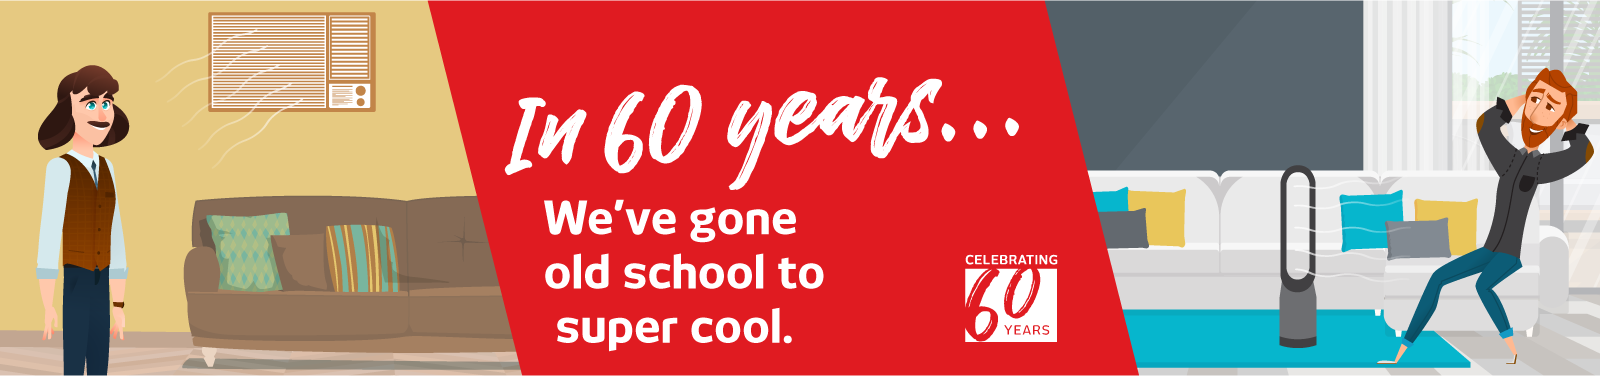 Celebrating 60 Years Cooling And Heating